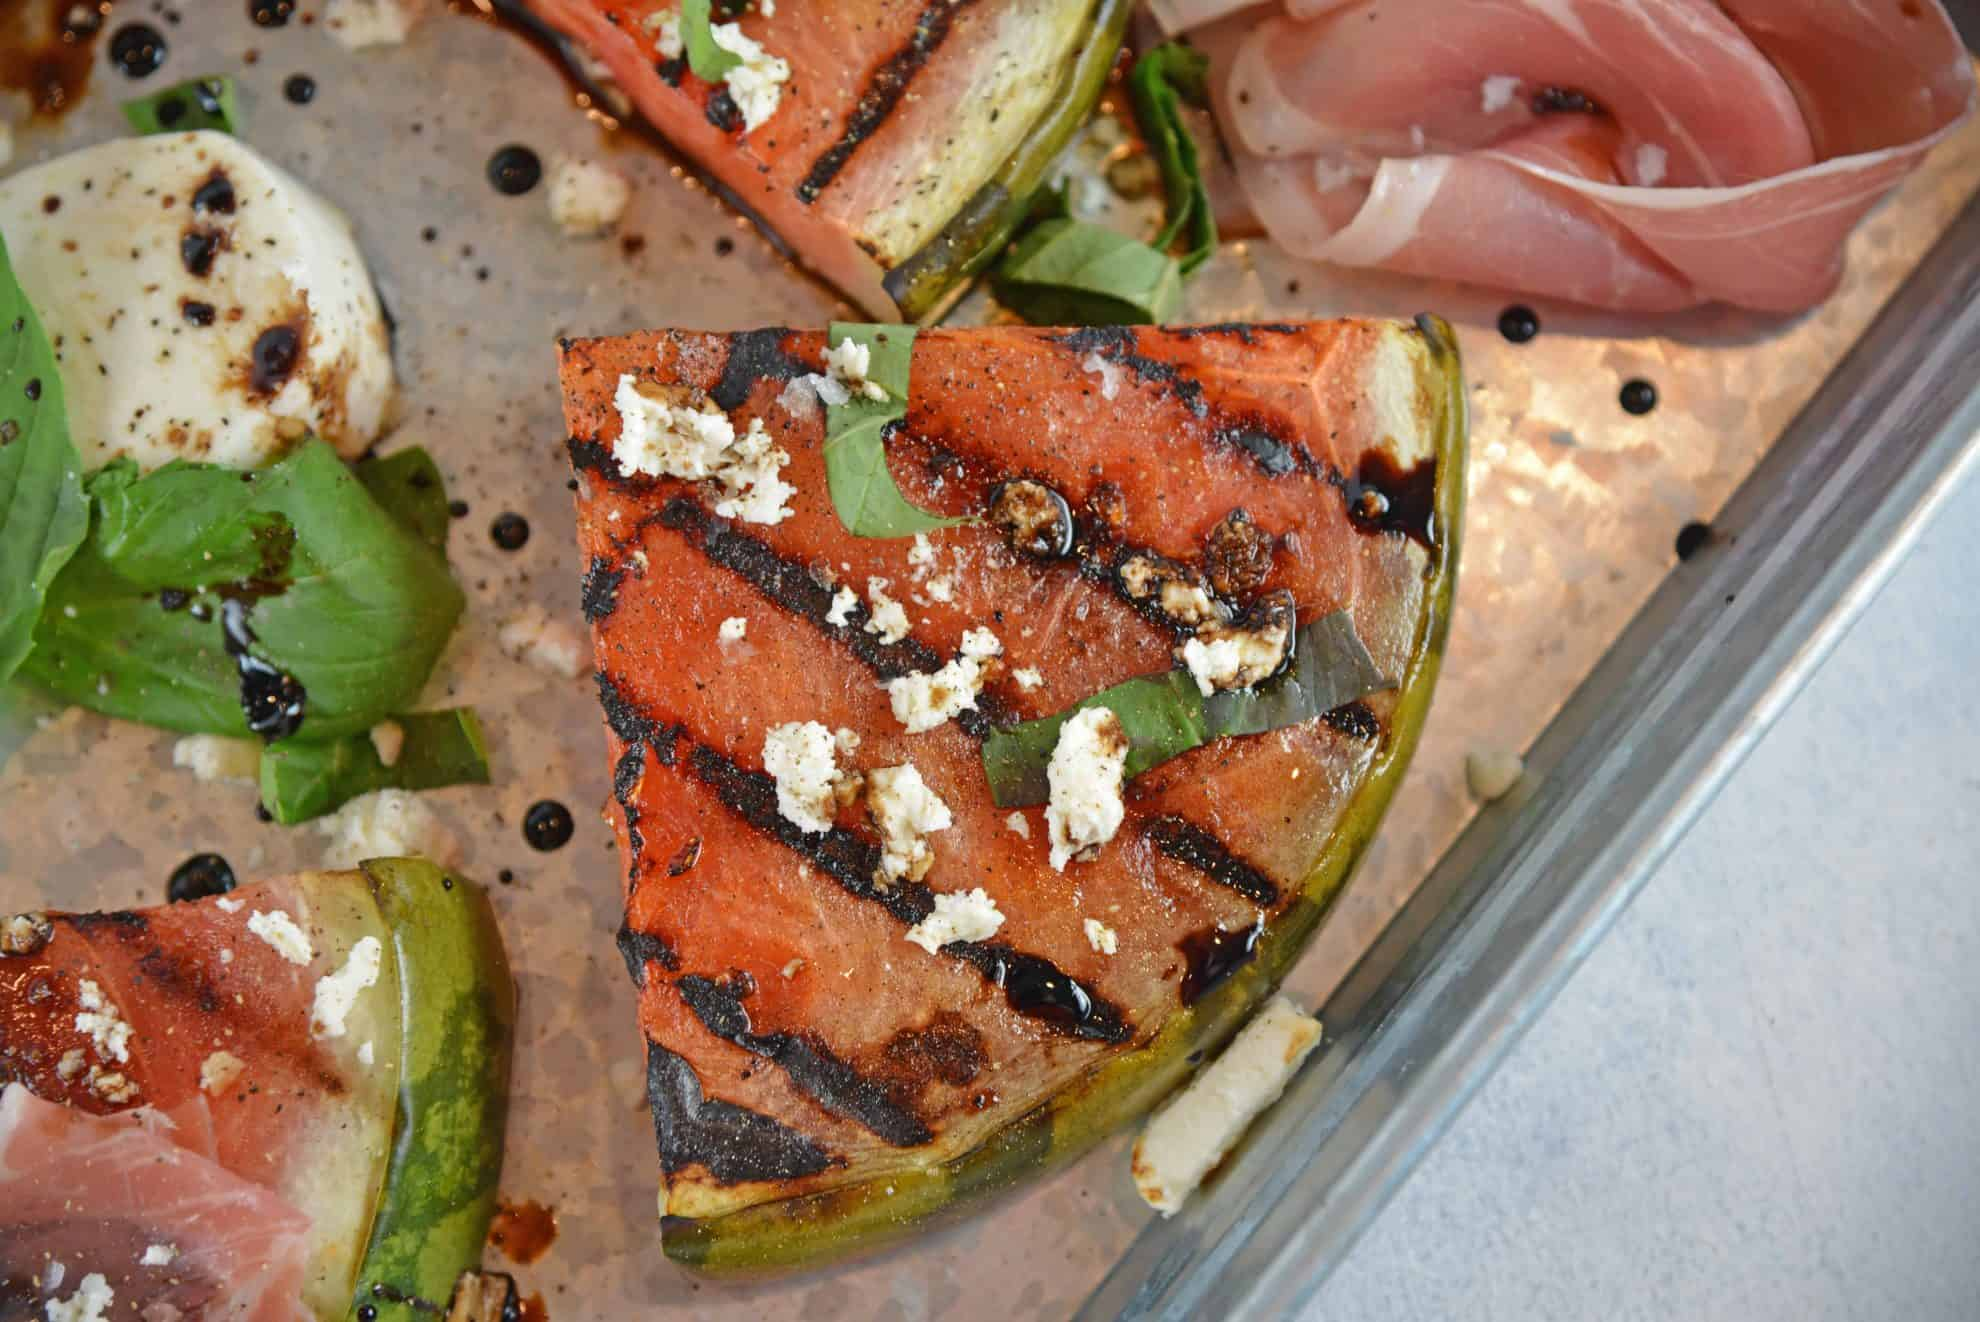 Grilled Watermelon Steaks with balsamic reduction and feta cheese are an easy BBQ side dish. Caramelized, juicy watermelon with savory cheese and sticky reduction is delicious! #grilledwatermelon #watermelonrecipes www.savoryexperiments.com